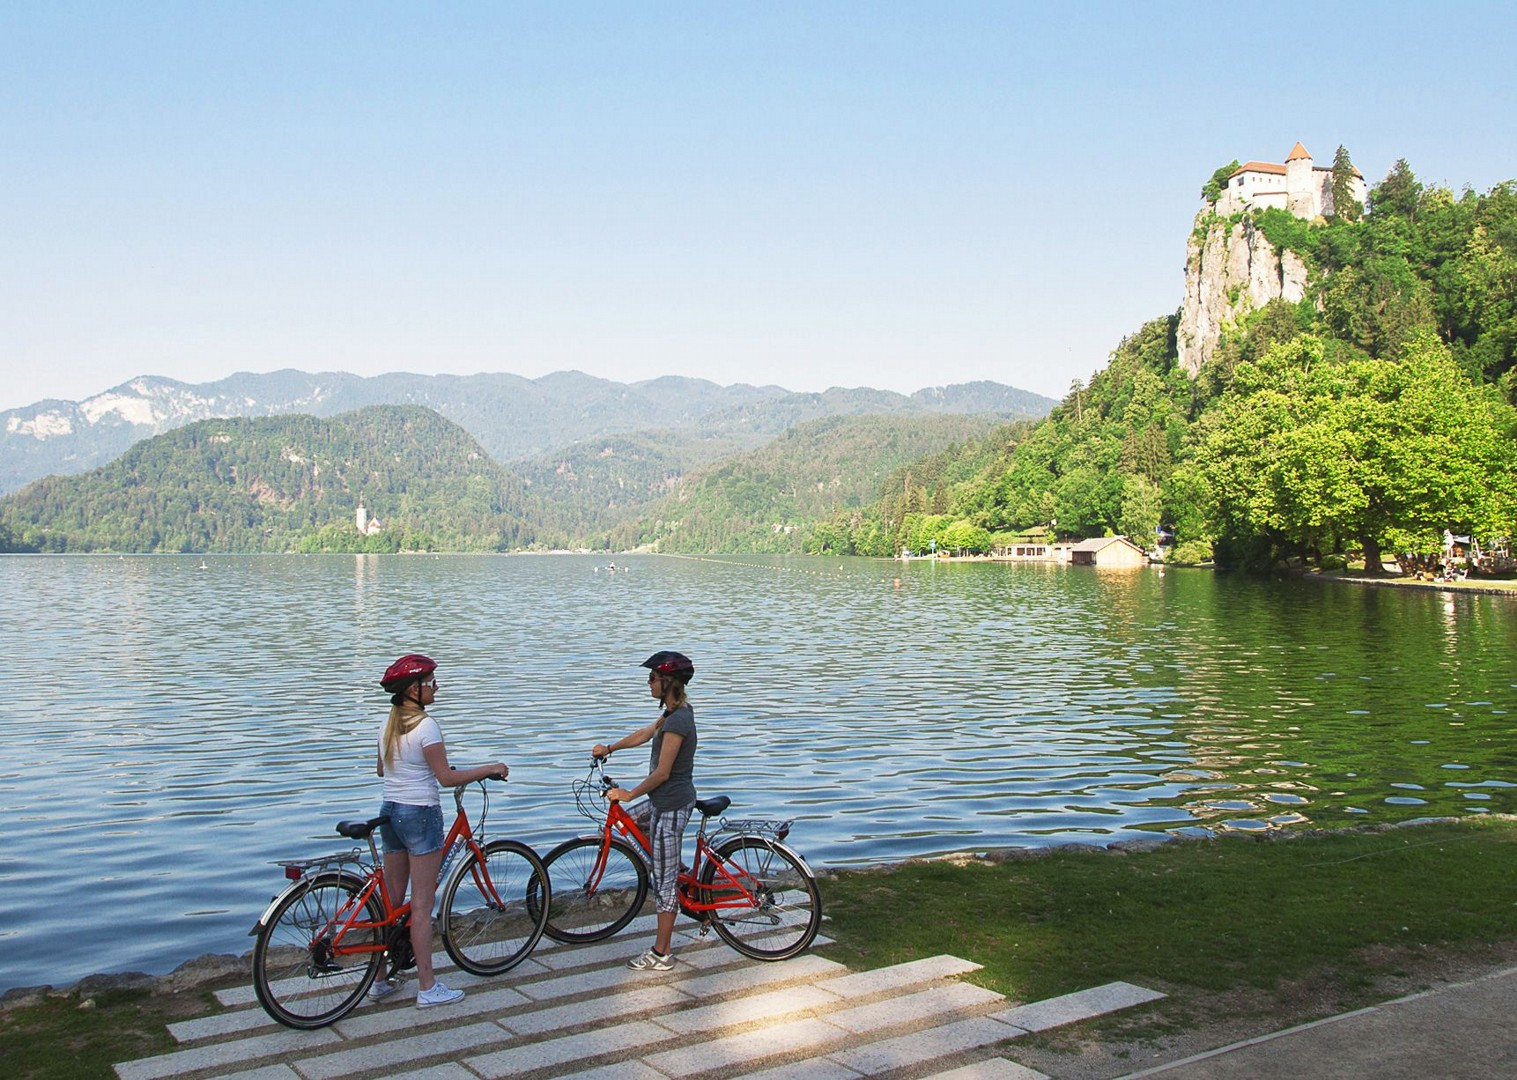 bled-island-cycling-trip-to-lake-bled-in-slovenia.jpg - Slovenia - Highlights of Lake Bled - Self-Guided Leisure Cycling Holiday - Leisure Cycling